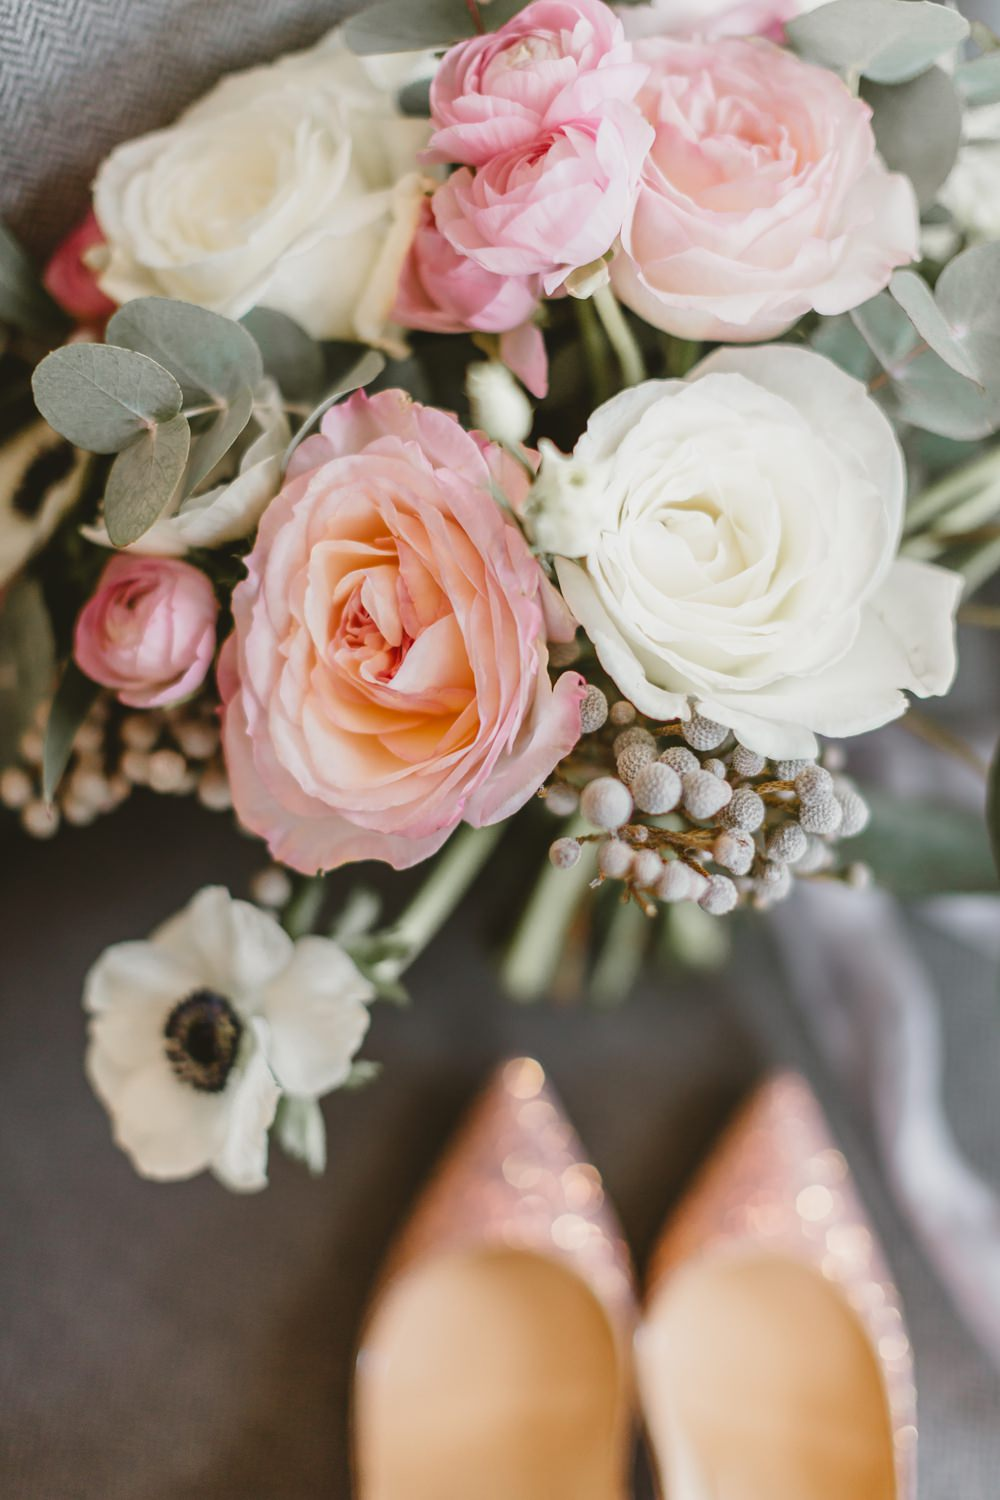 Bouquet Flowers Bride Bridal Pink Cream Rose Anemone Berries York Minster Wedding Amy Lou Photography